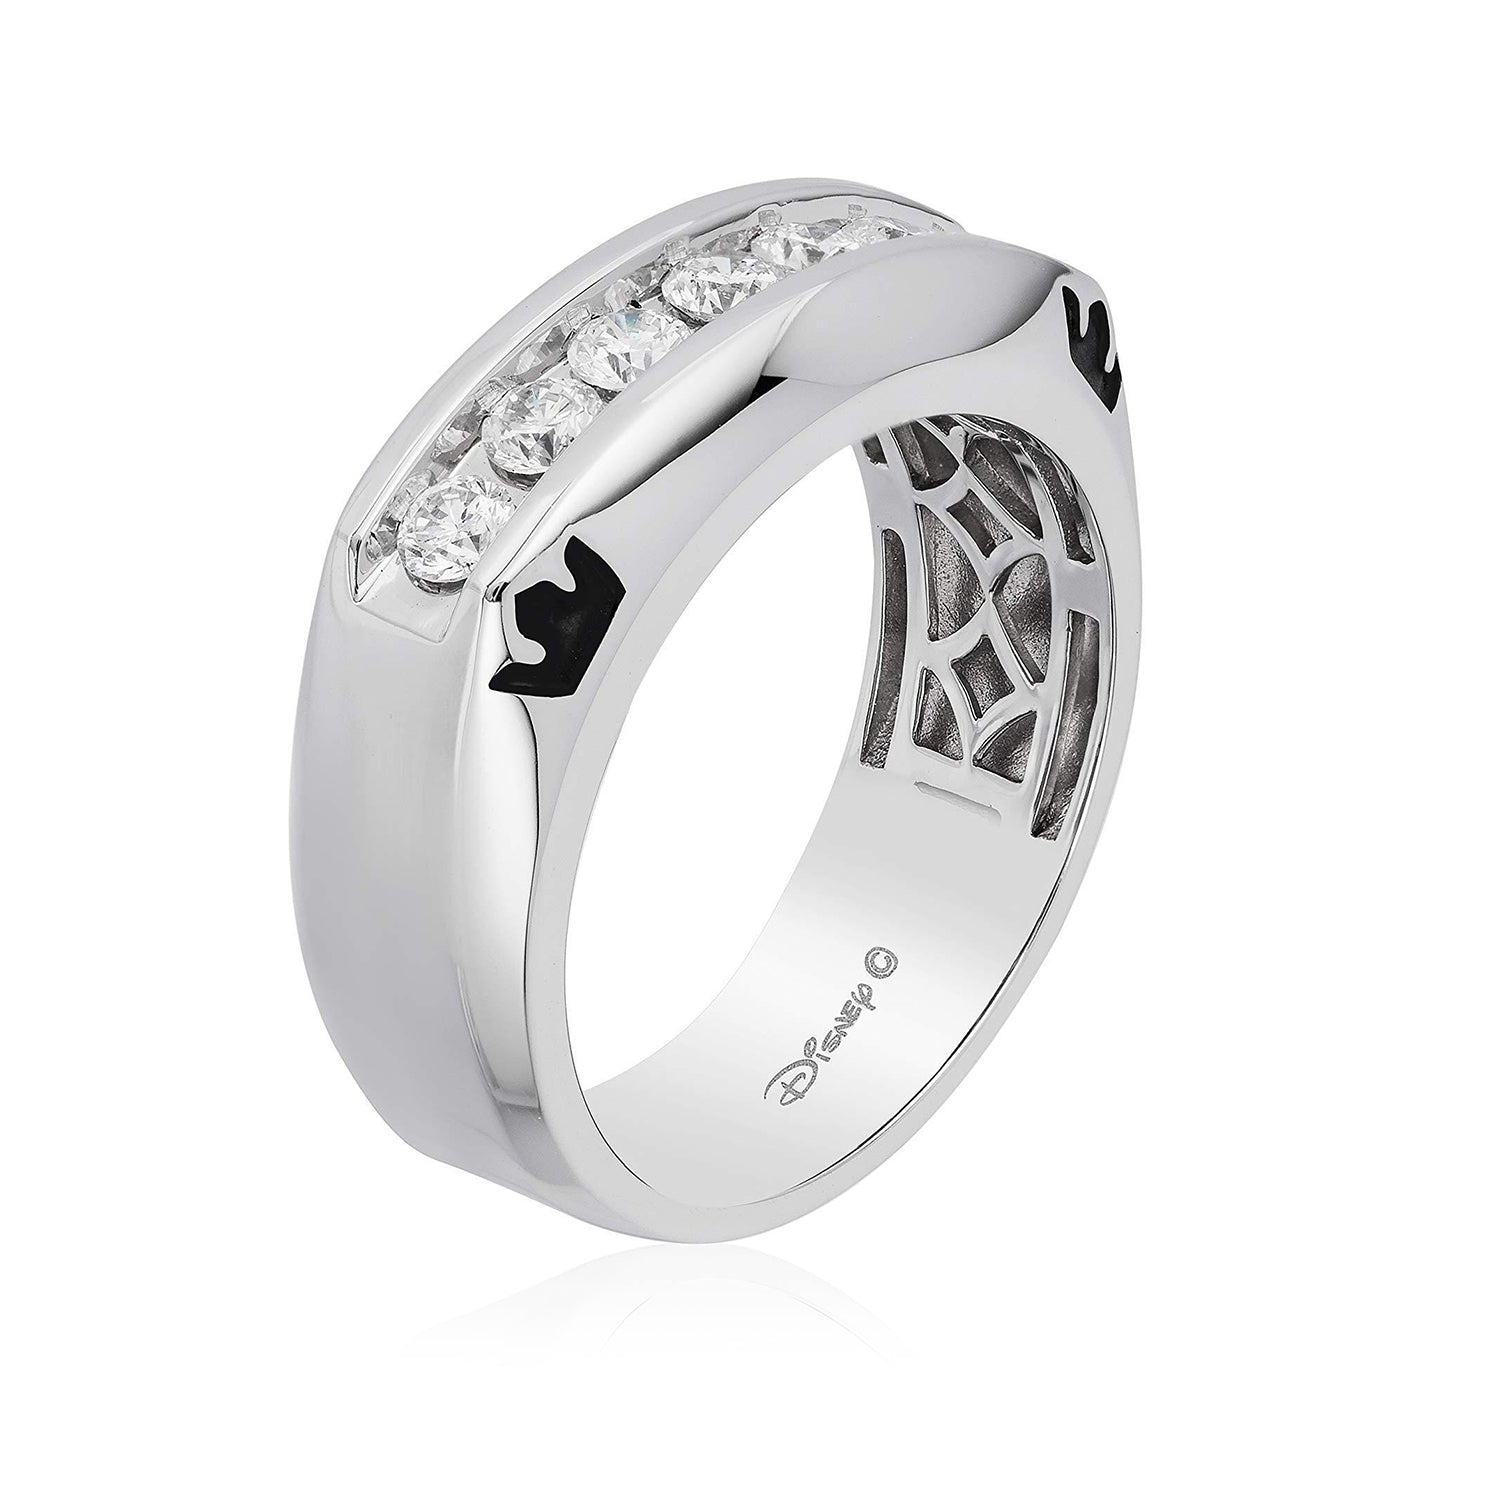 enchanted_disney-prince_fine_jewelry_14k_white_gold_3_4_cttw_mens_ring-14k_white_gold_3/4CTTW_2